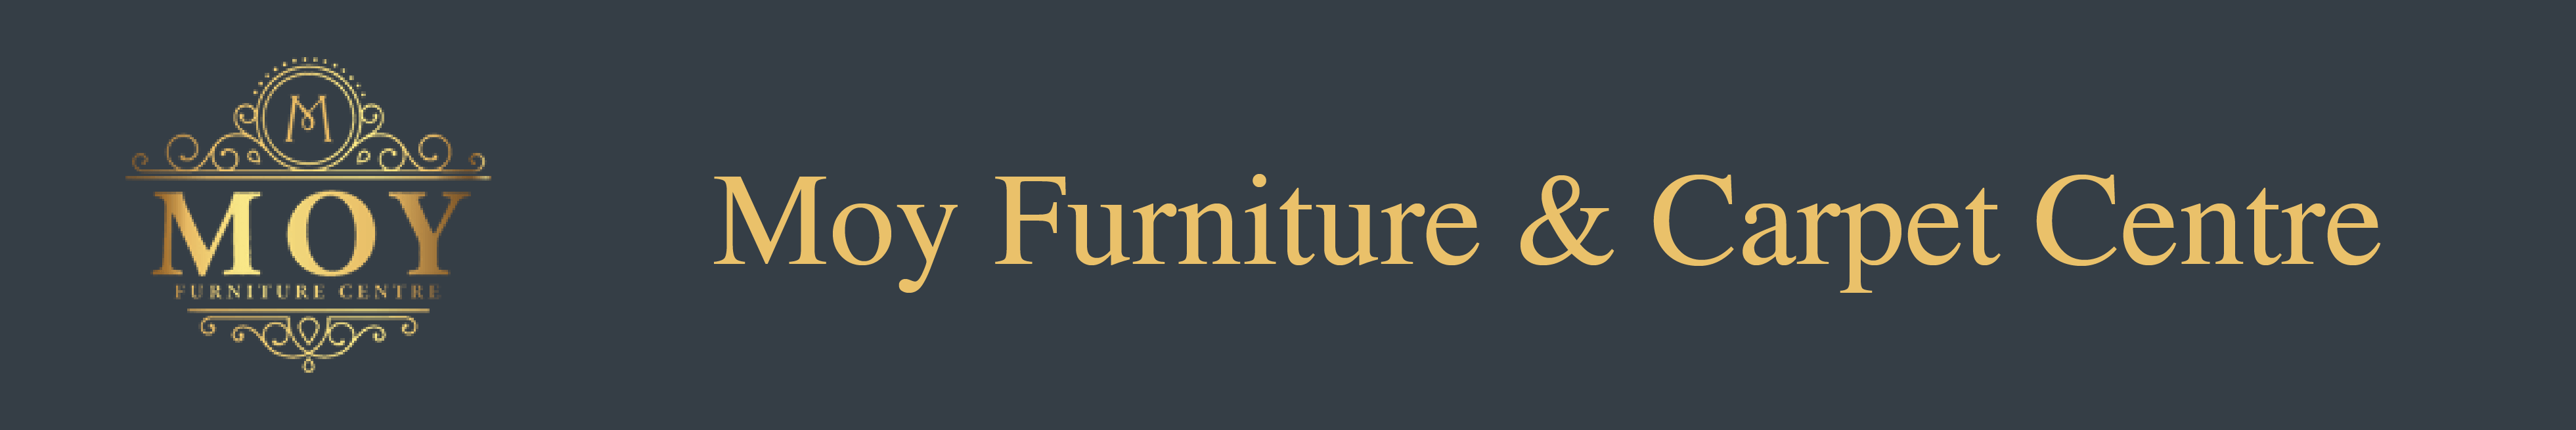 Moy Furniture logo